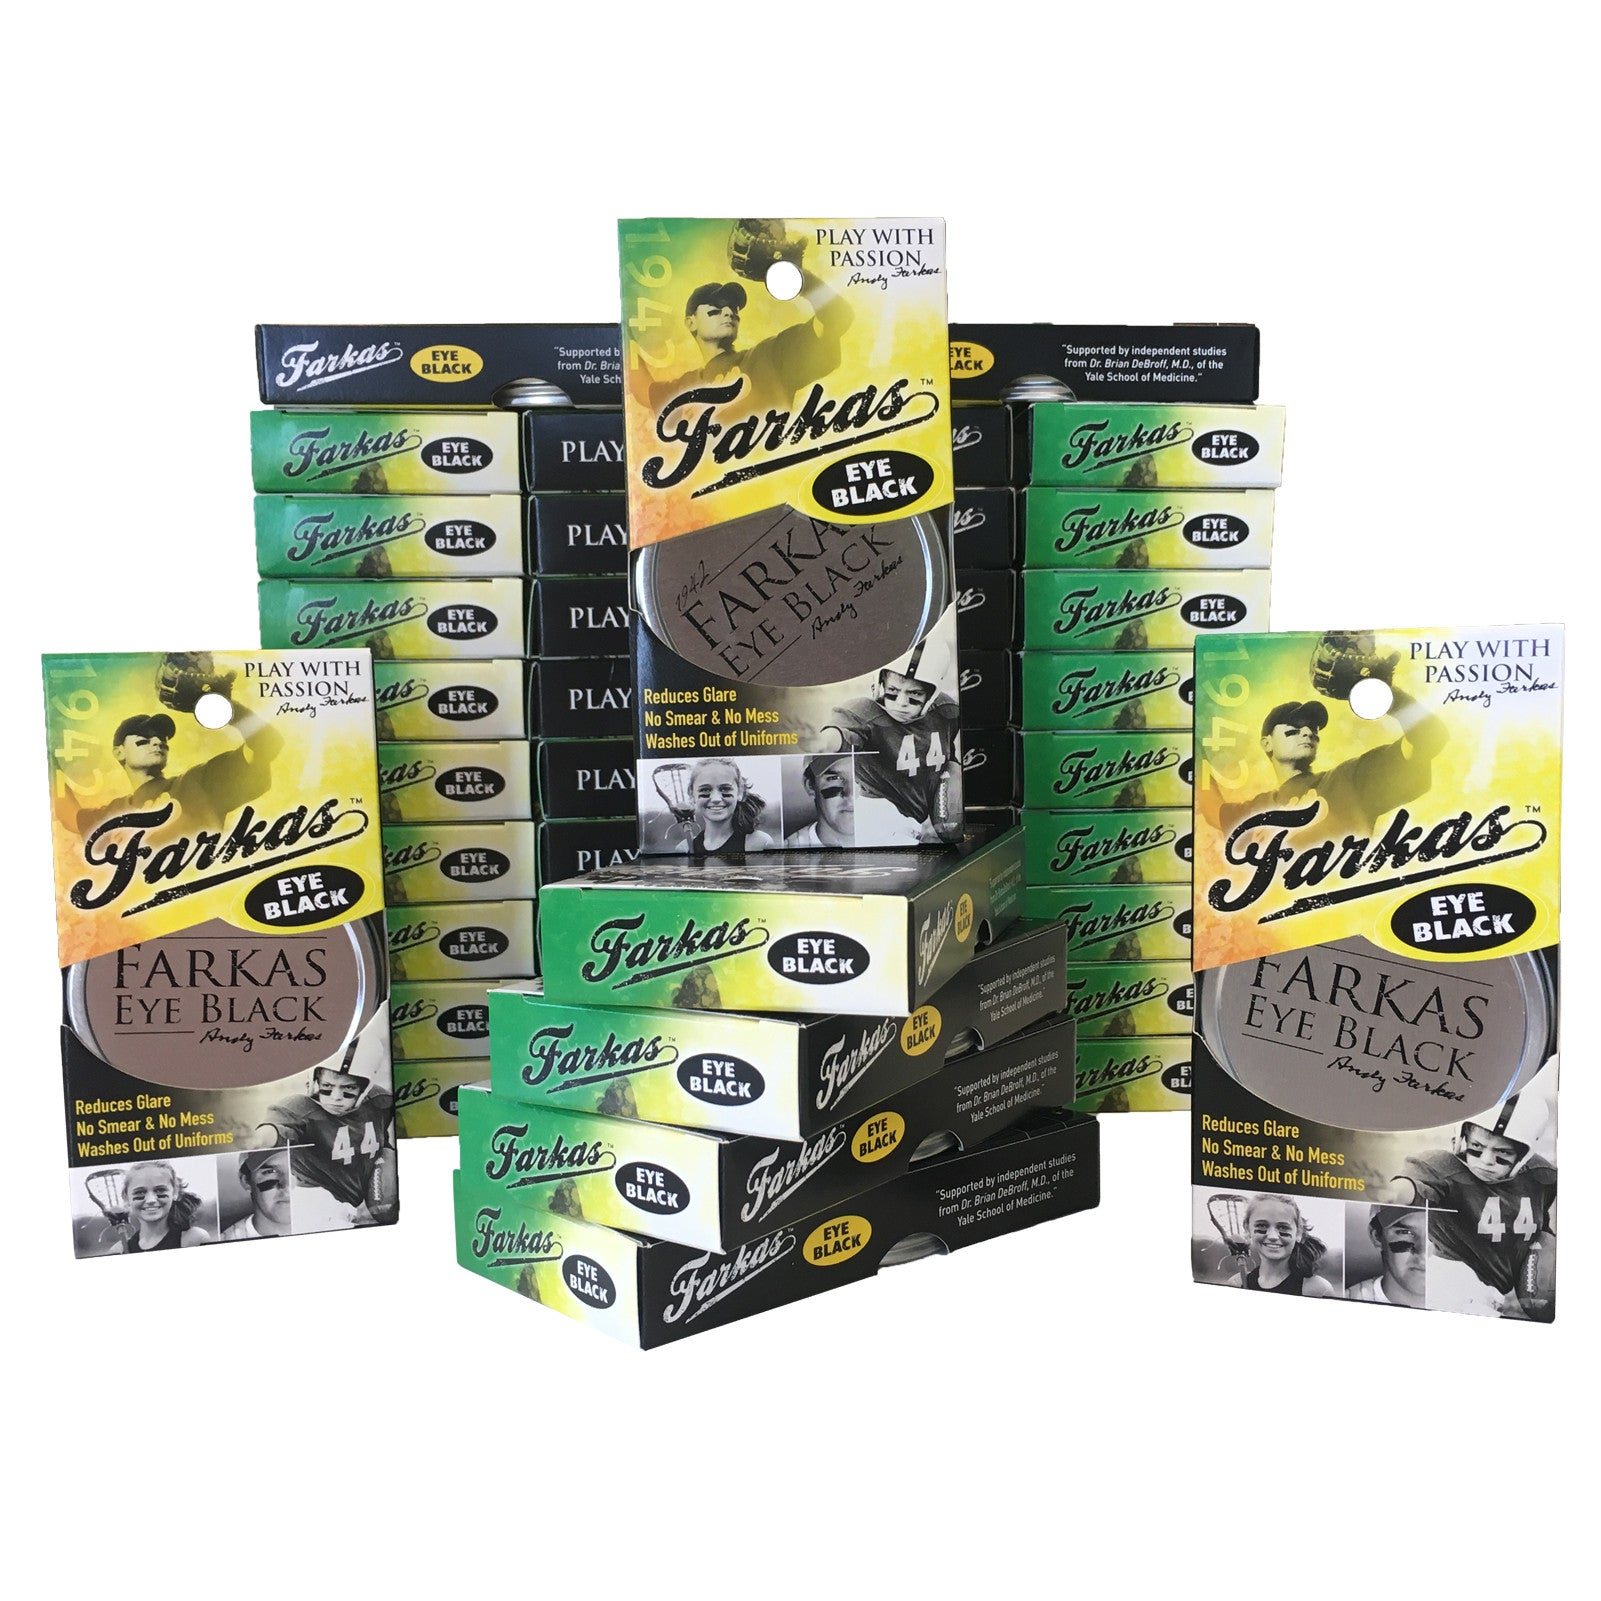 Farkas Eye Black- 3 box (36 tins)